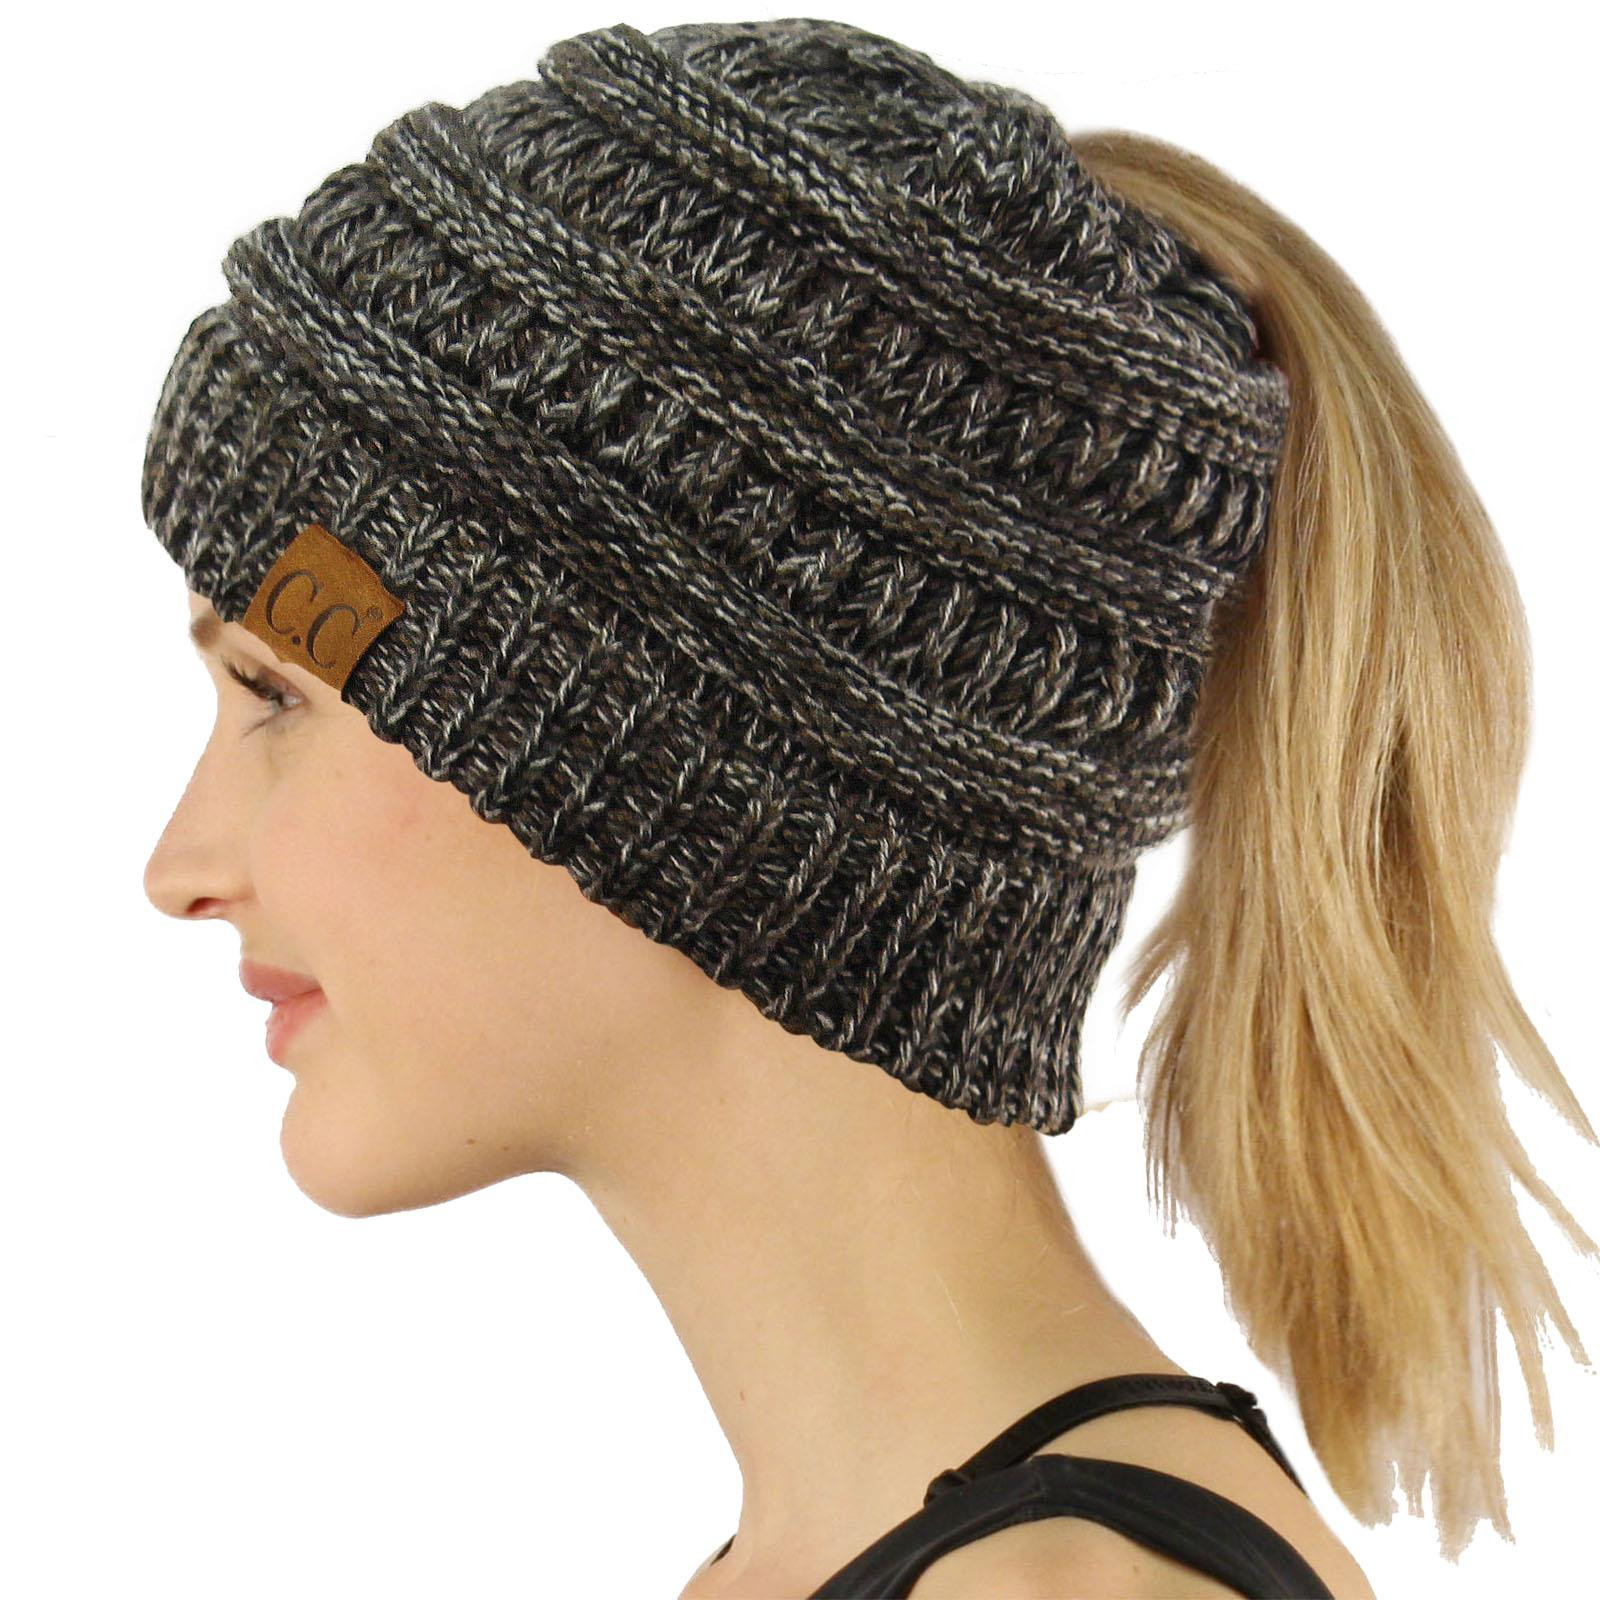 Messy Bun Beanie Hat Luxury Cc Beanietail Messy High Bun Ponytail Stretchy Knit Beanie Of Brilliant 47 Photos Messy Bun Beanie Hat